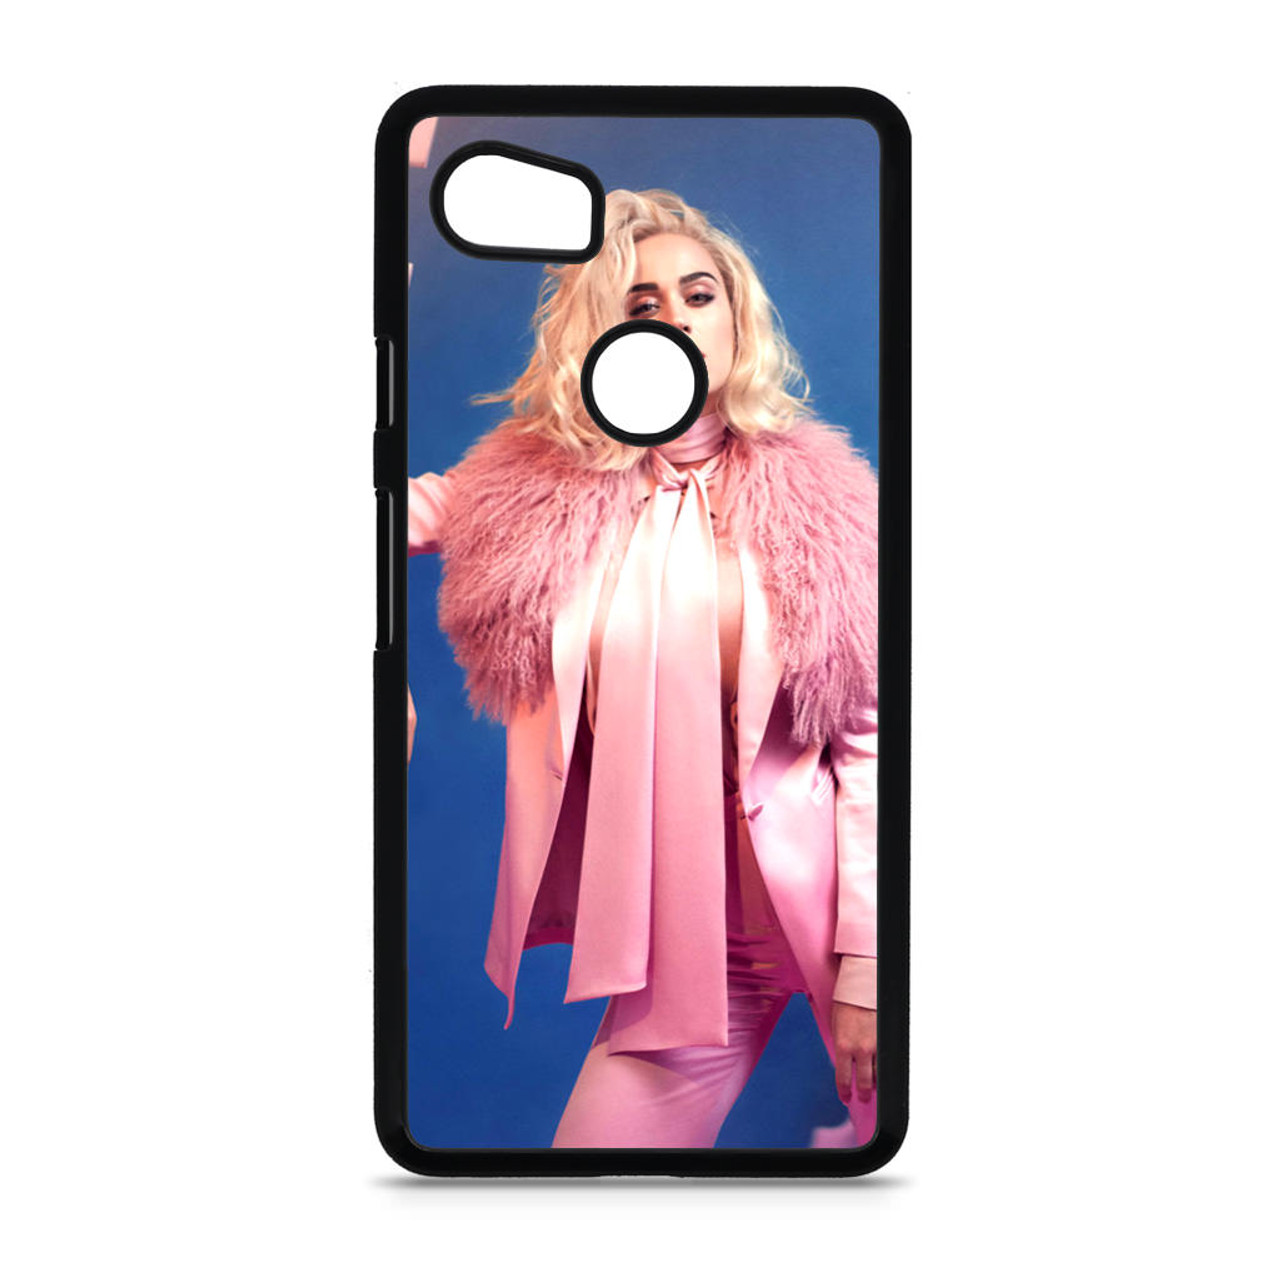 Katy Perry Chained to the Rhythm Google Pixel 2 XL Case